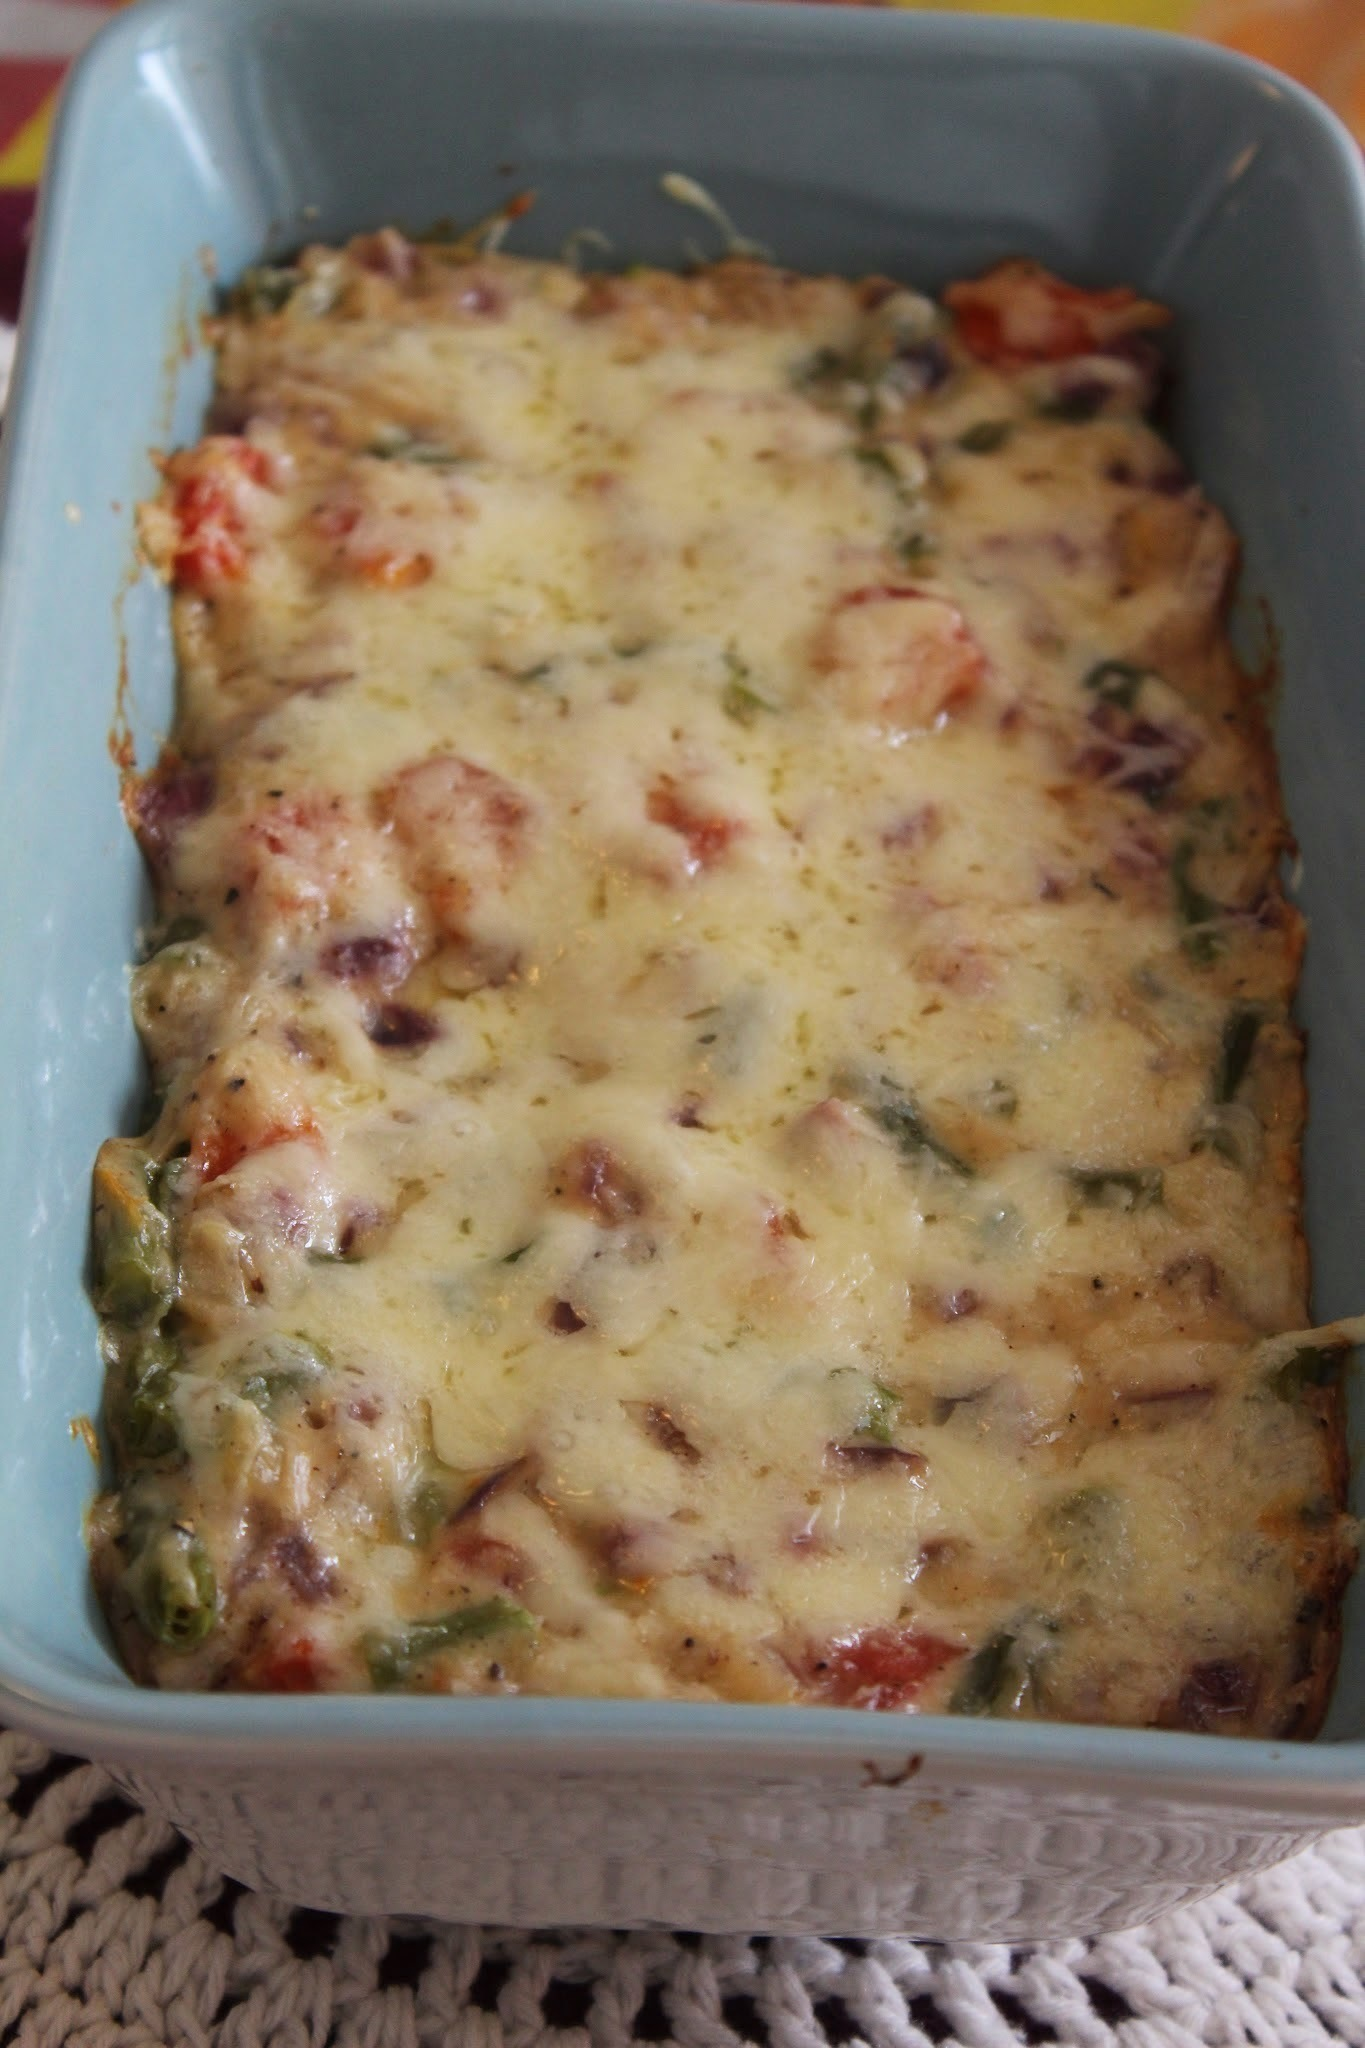 Cheesy baked vegetable and rice